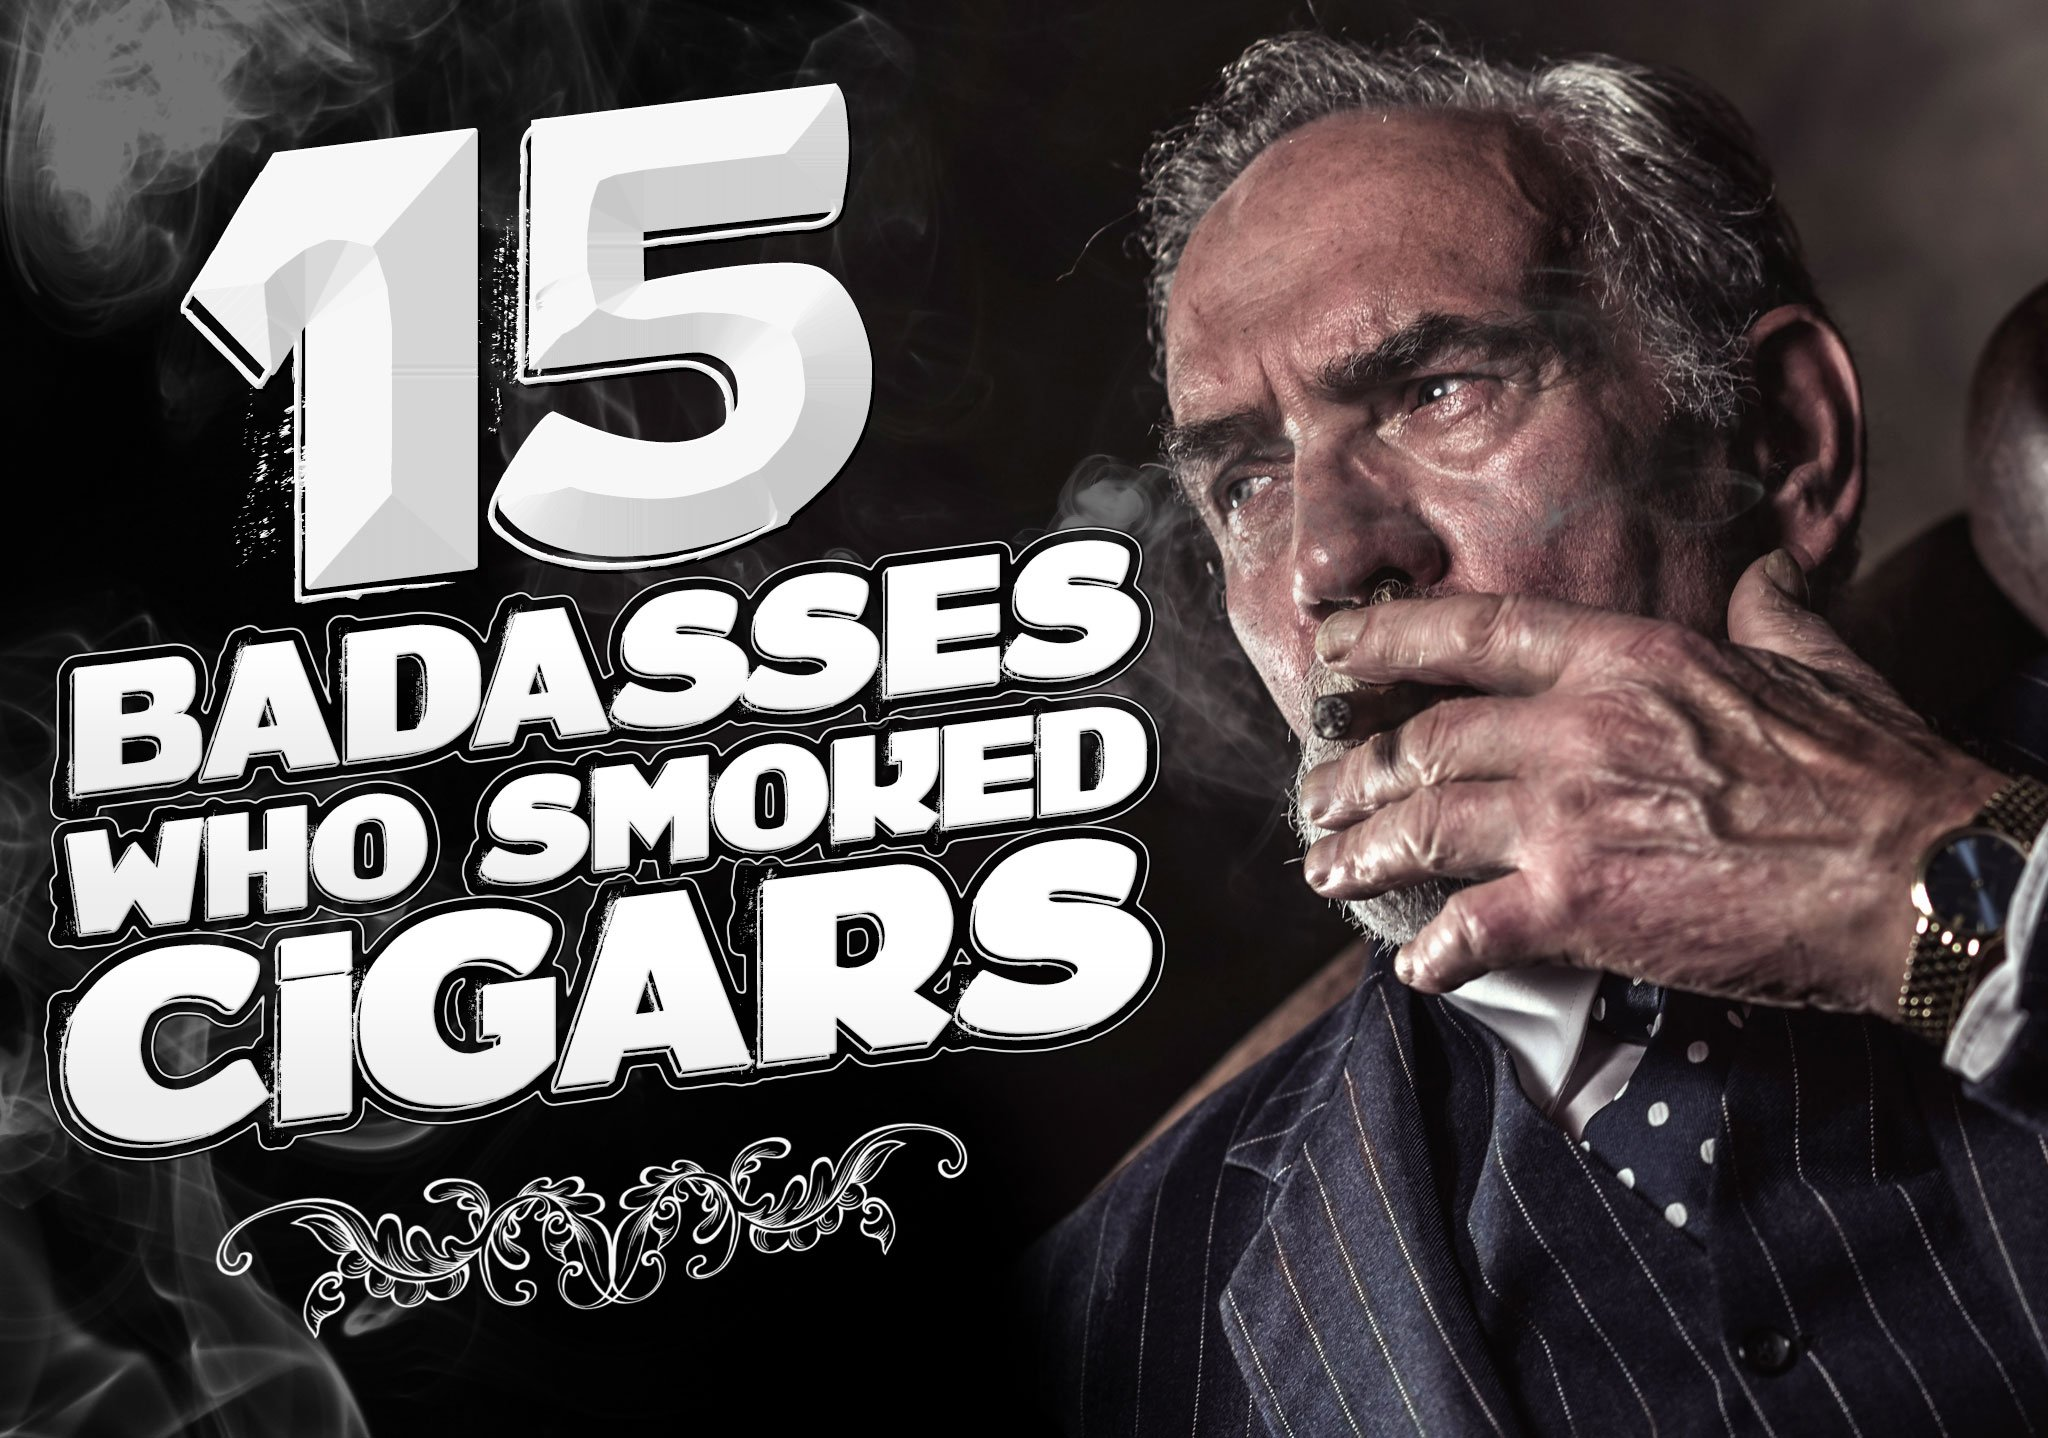 15 Badasses Who Smoked Cigars